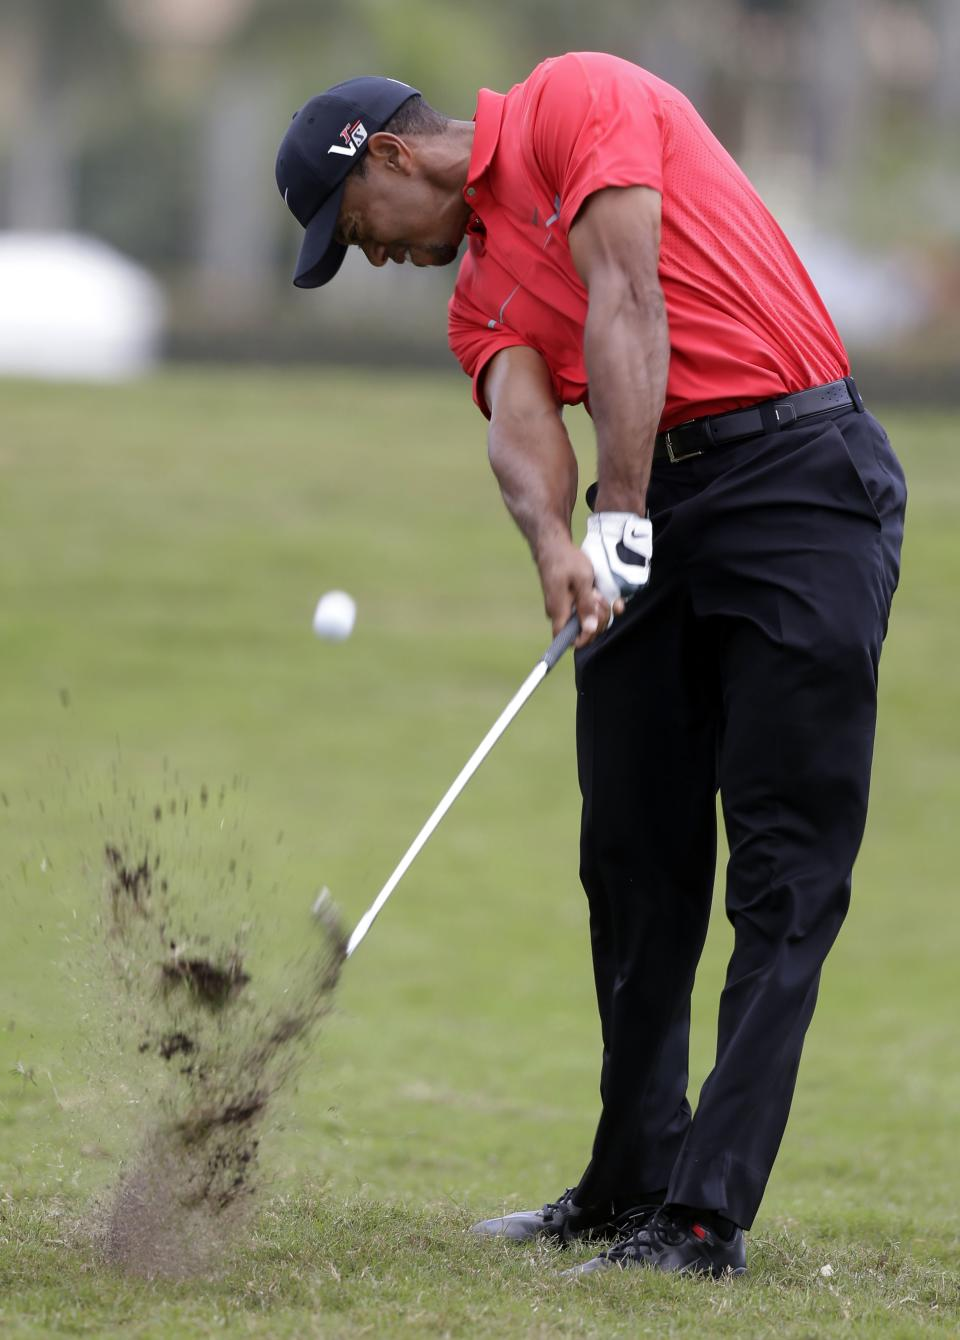 Tiger Woods hits from the second hole fairway during the third round of the Cadillac Championship golf tournament on Sunday, March 10, 2013, in Doral, Fla. (AP Photo/Wilfredo Lee)